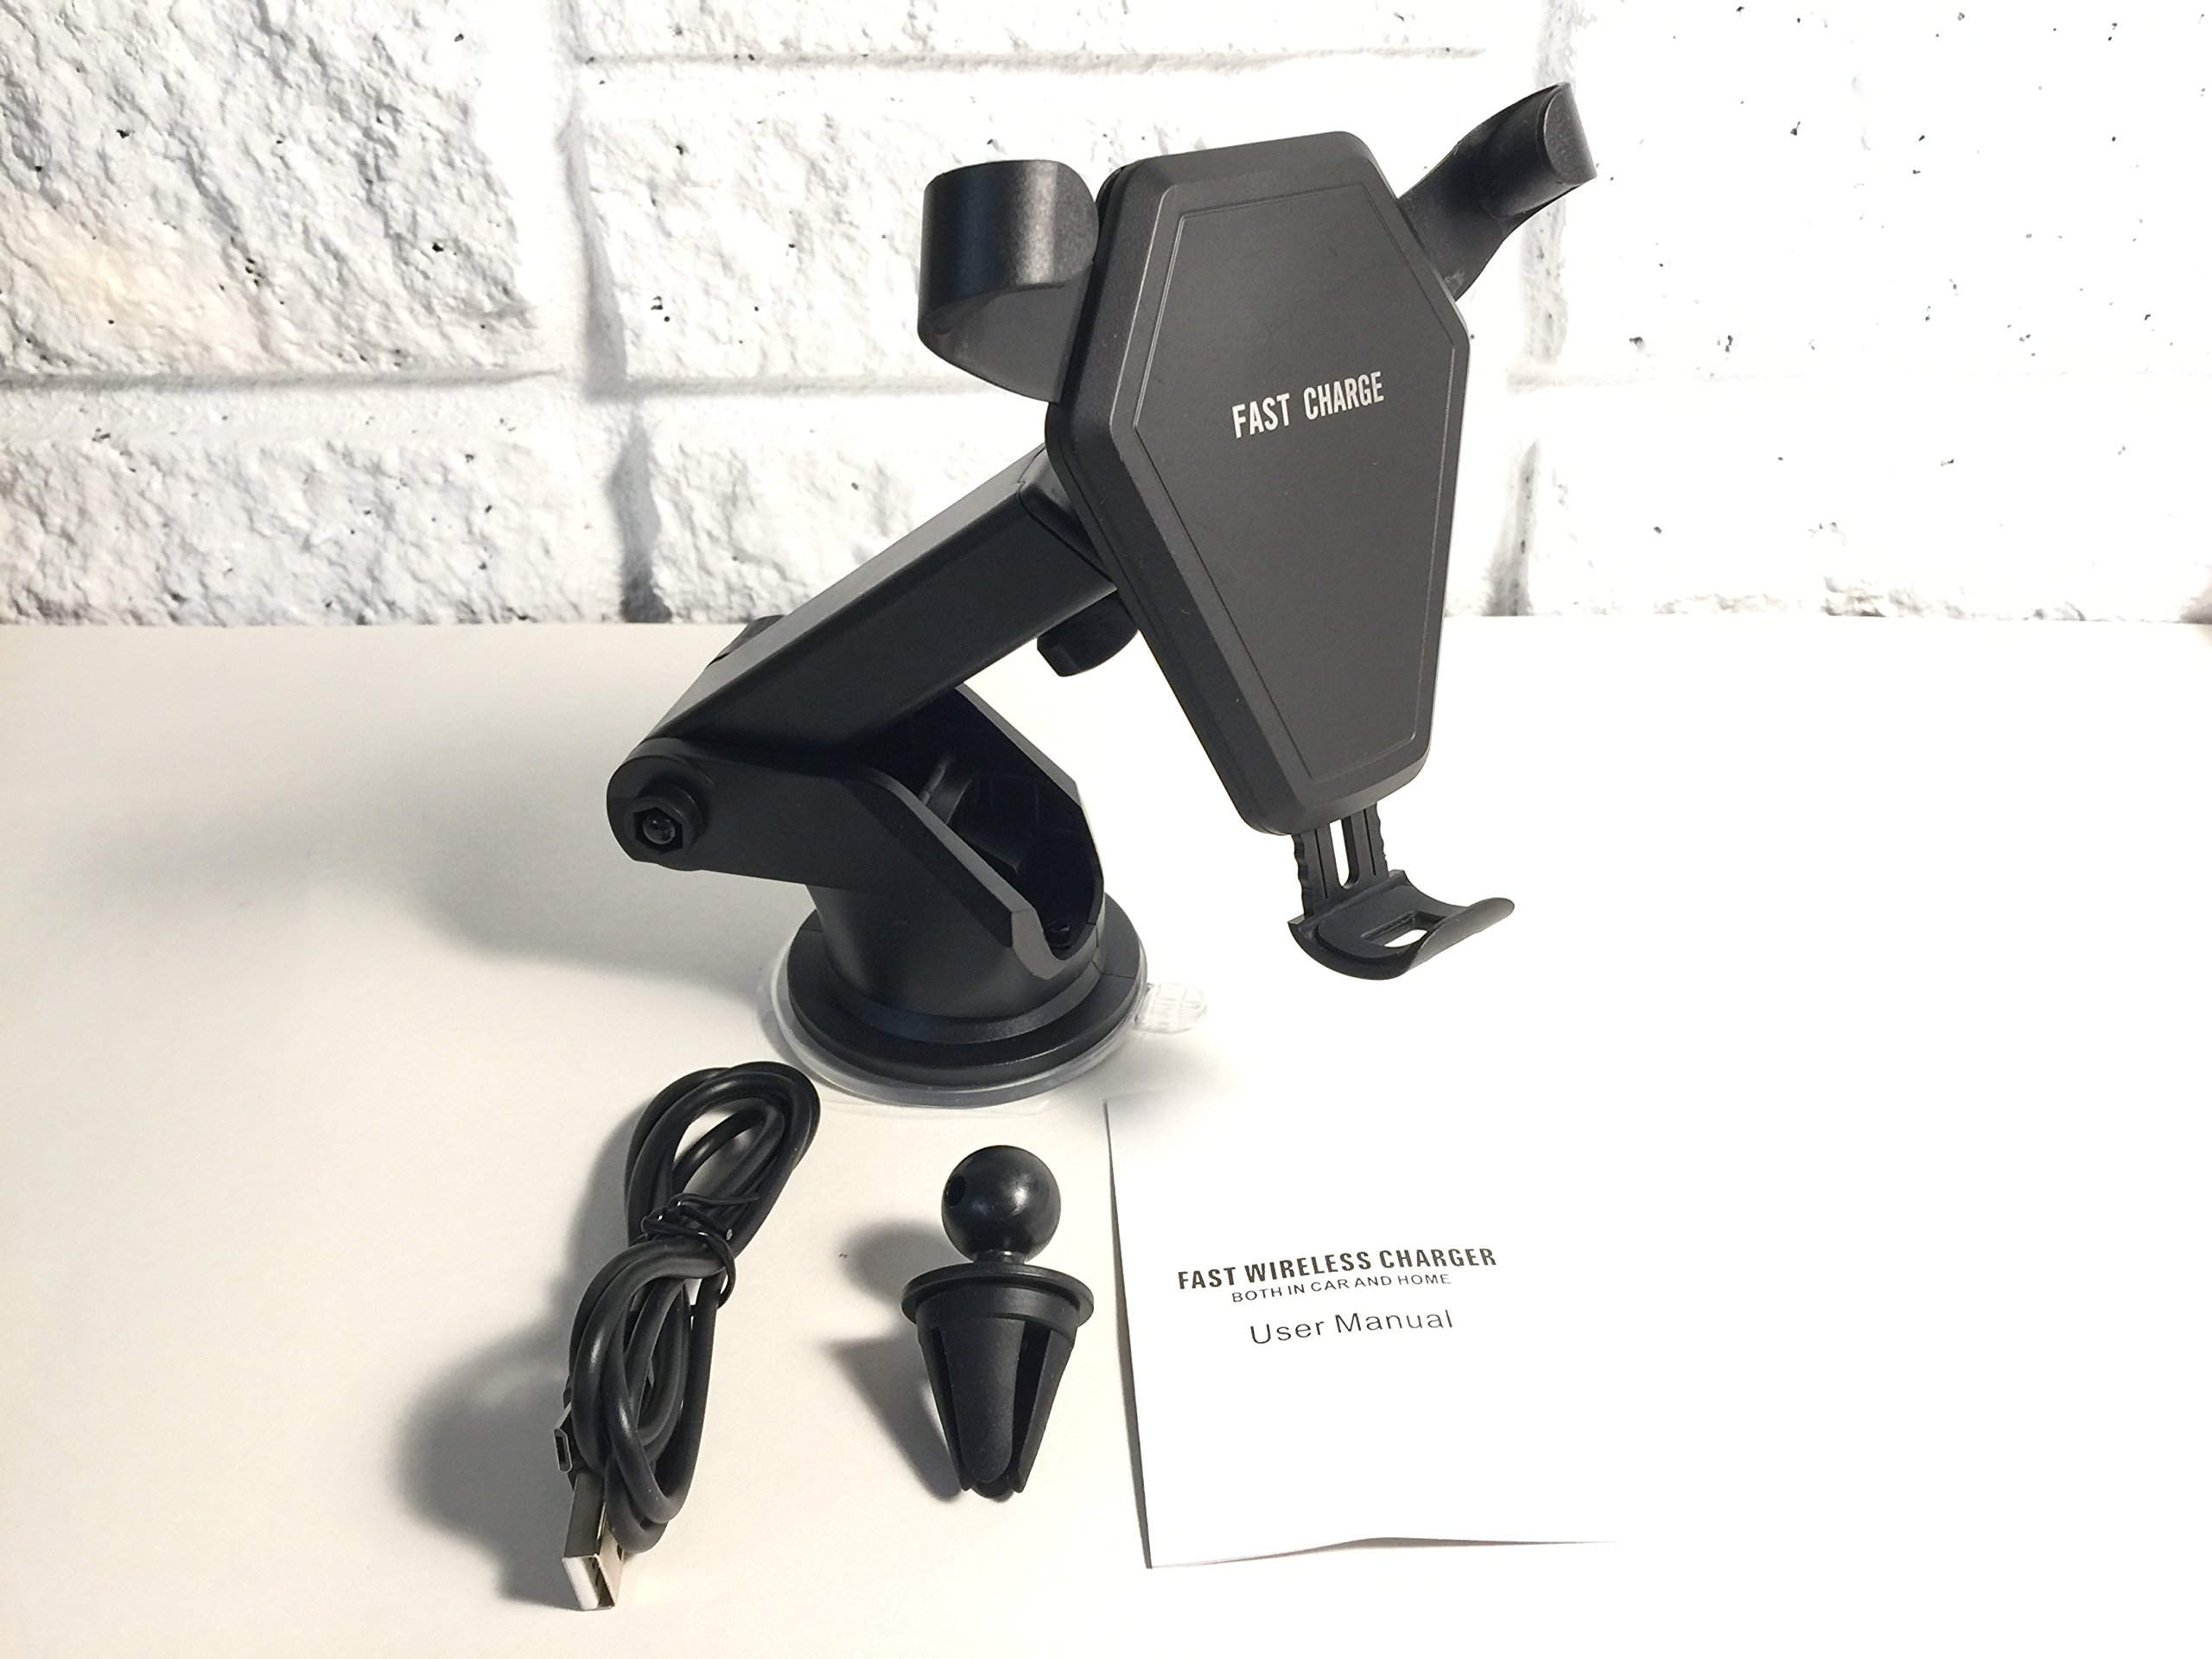 Qi Wireless Fast Charge Car Mount for Samsung Galaxy S9 S9 Plus S8 S7/S7 Edge Note 8 5 & Standard Charge for